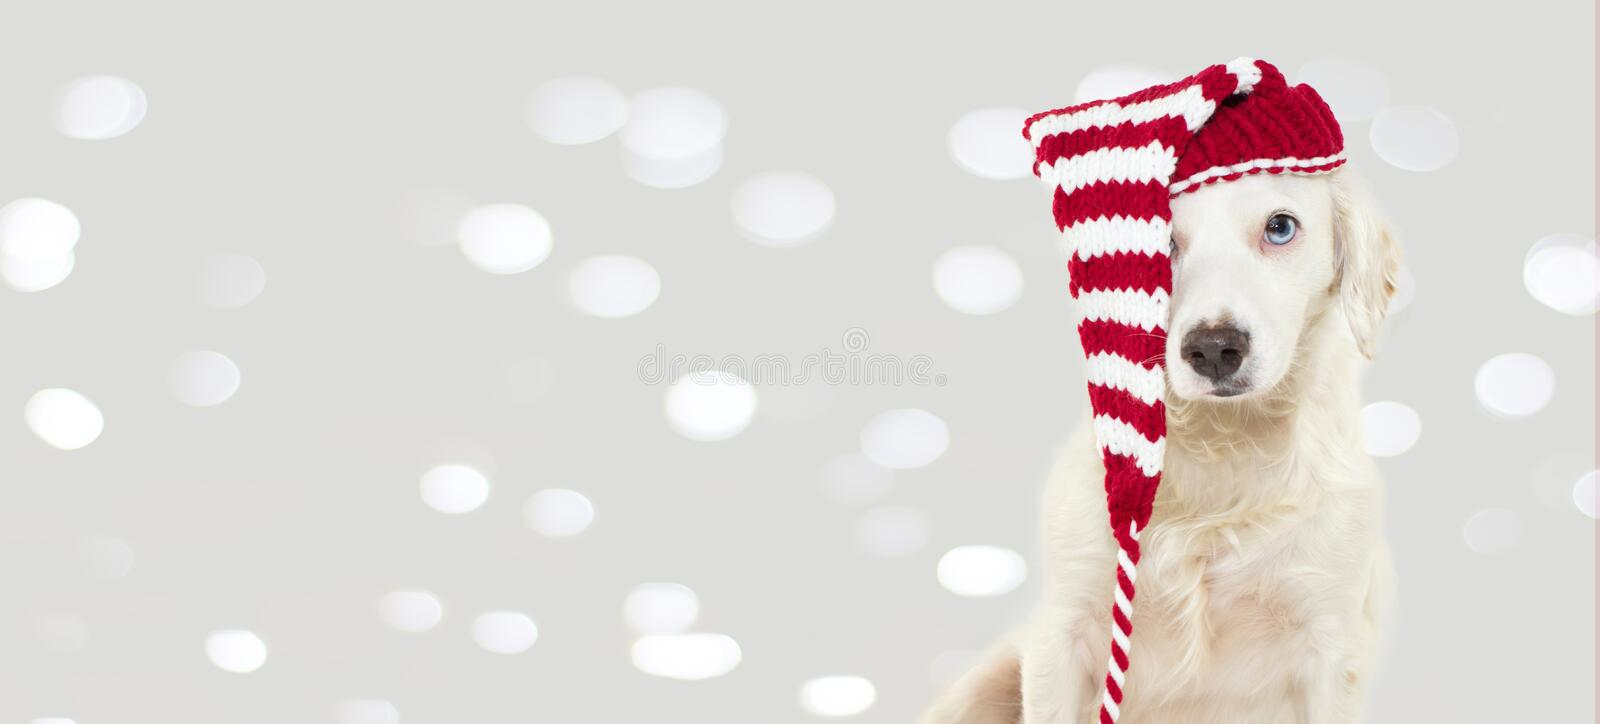 BANNER OF A CUTE CHRISTMAS DOG WEARING A STRIPED RED HAT WITH BL royalty free stock photography